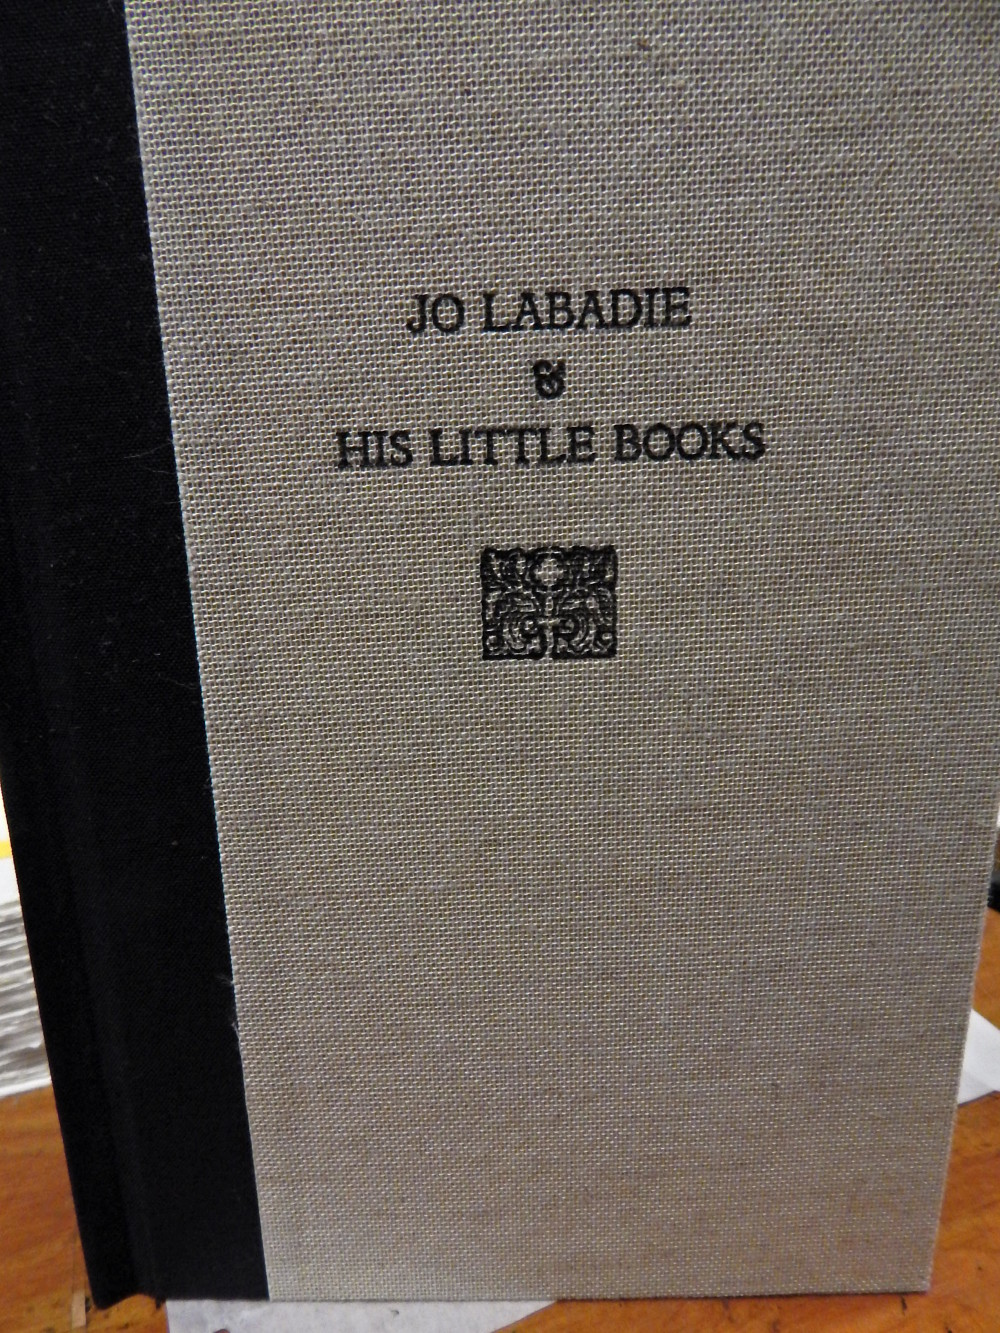 Joseph Labadie's little books